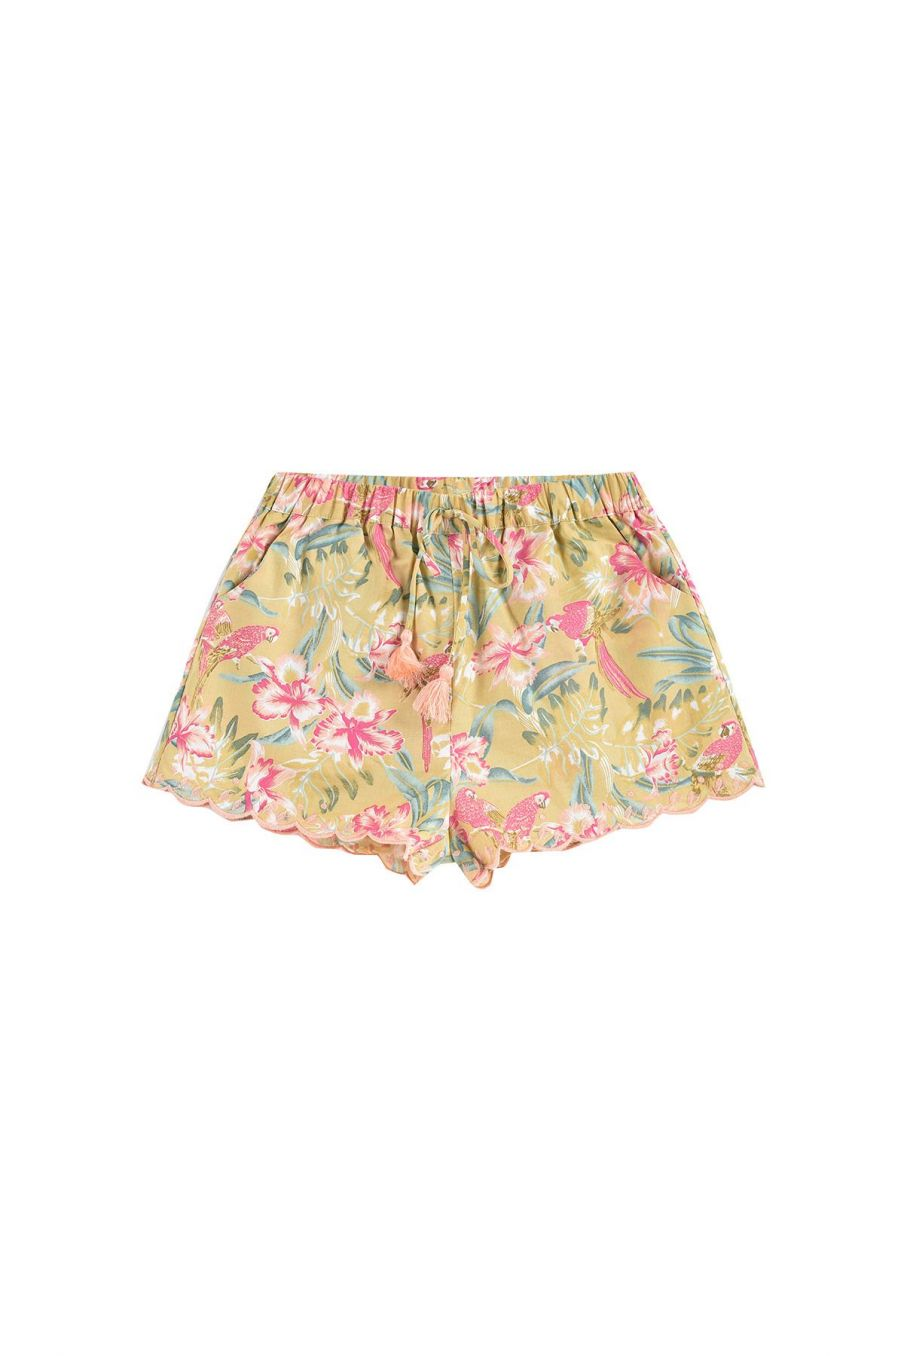 boheme chic vintage short fille vallaloid soft honey parrots